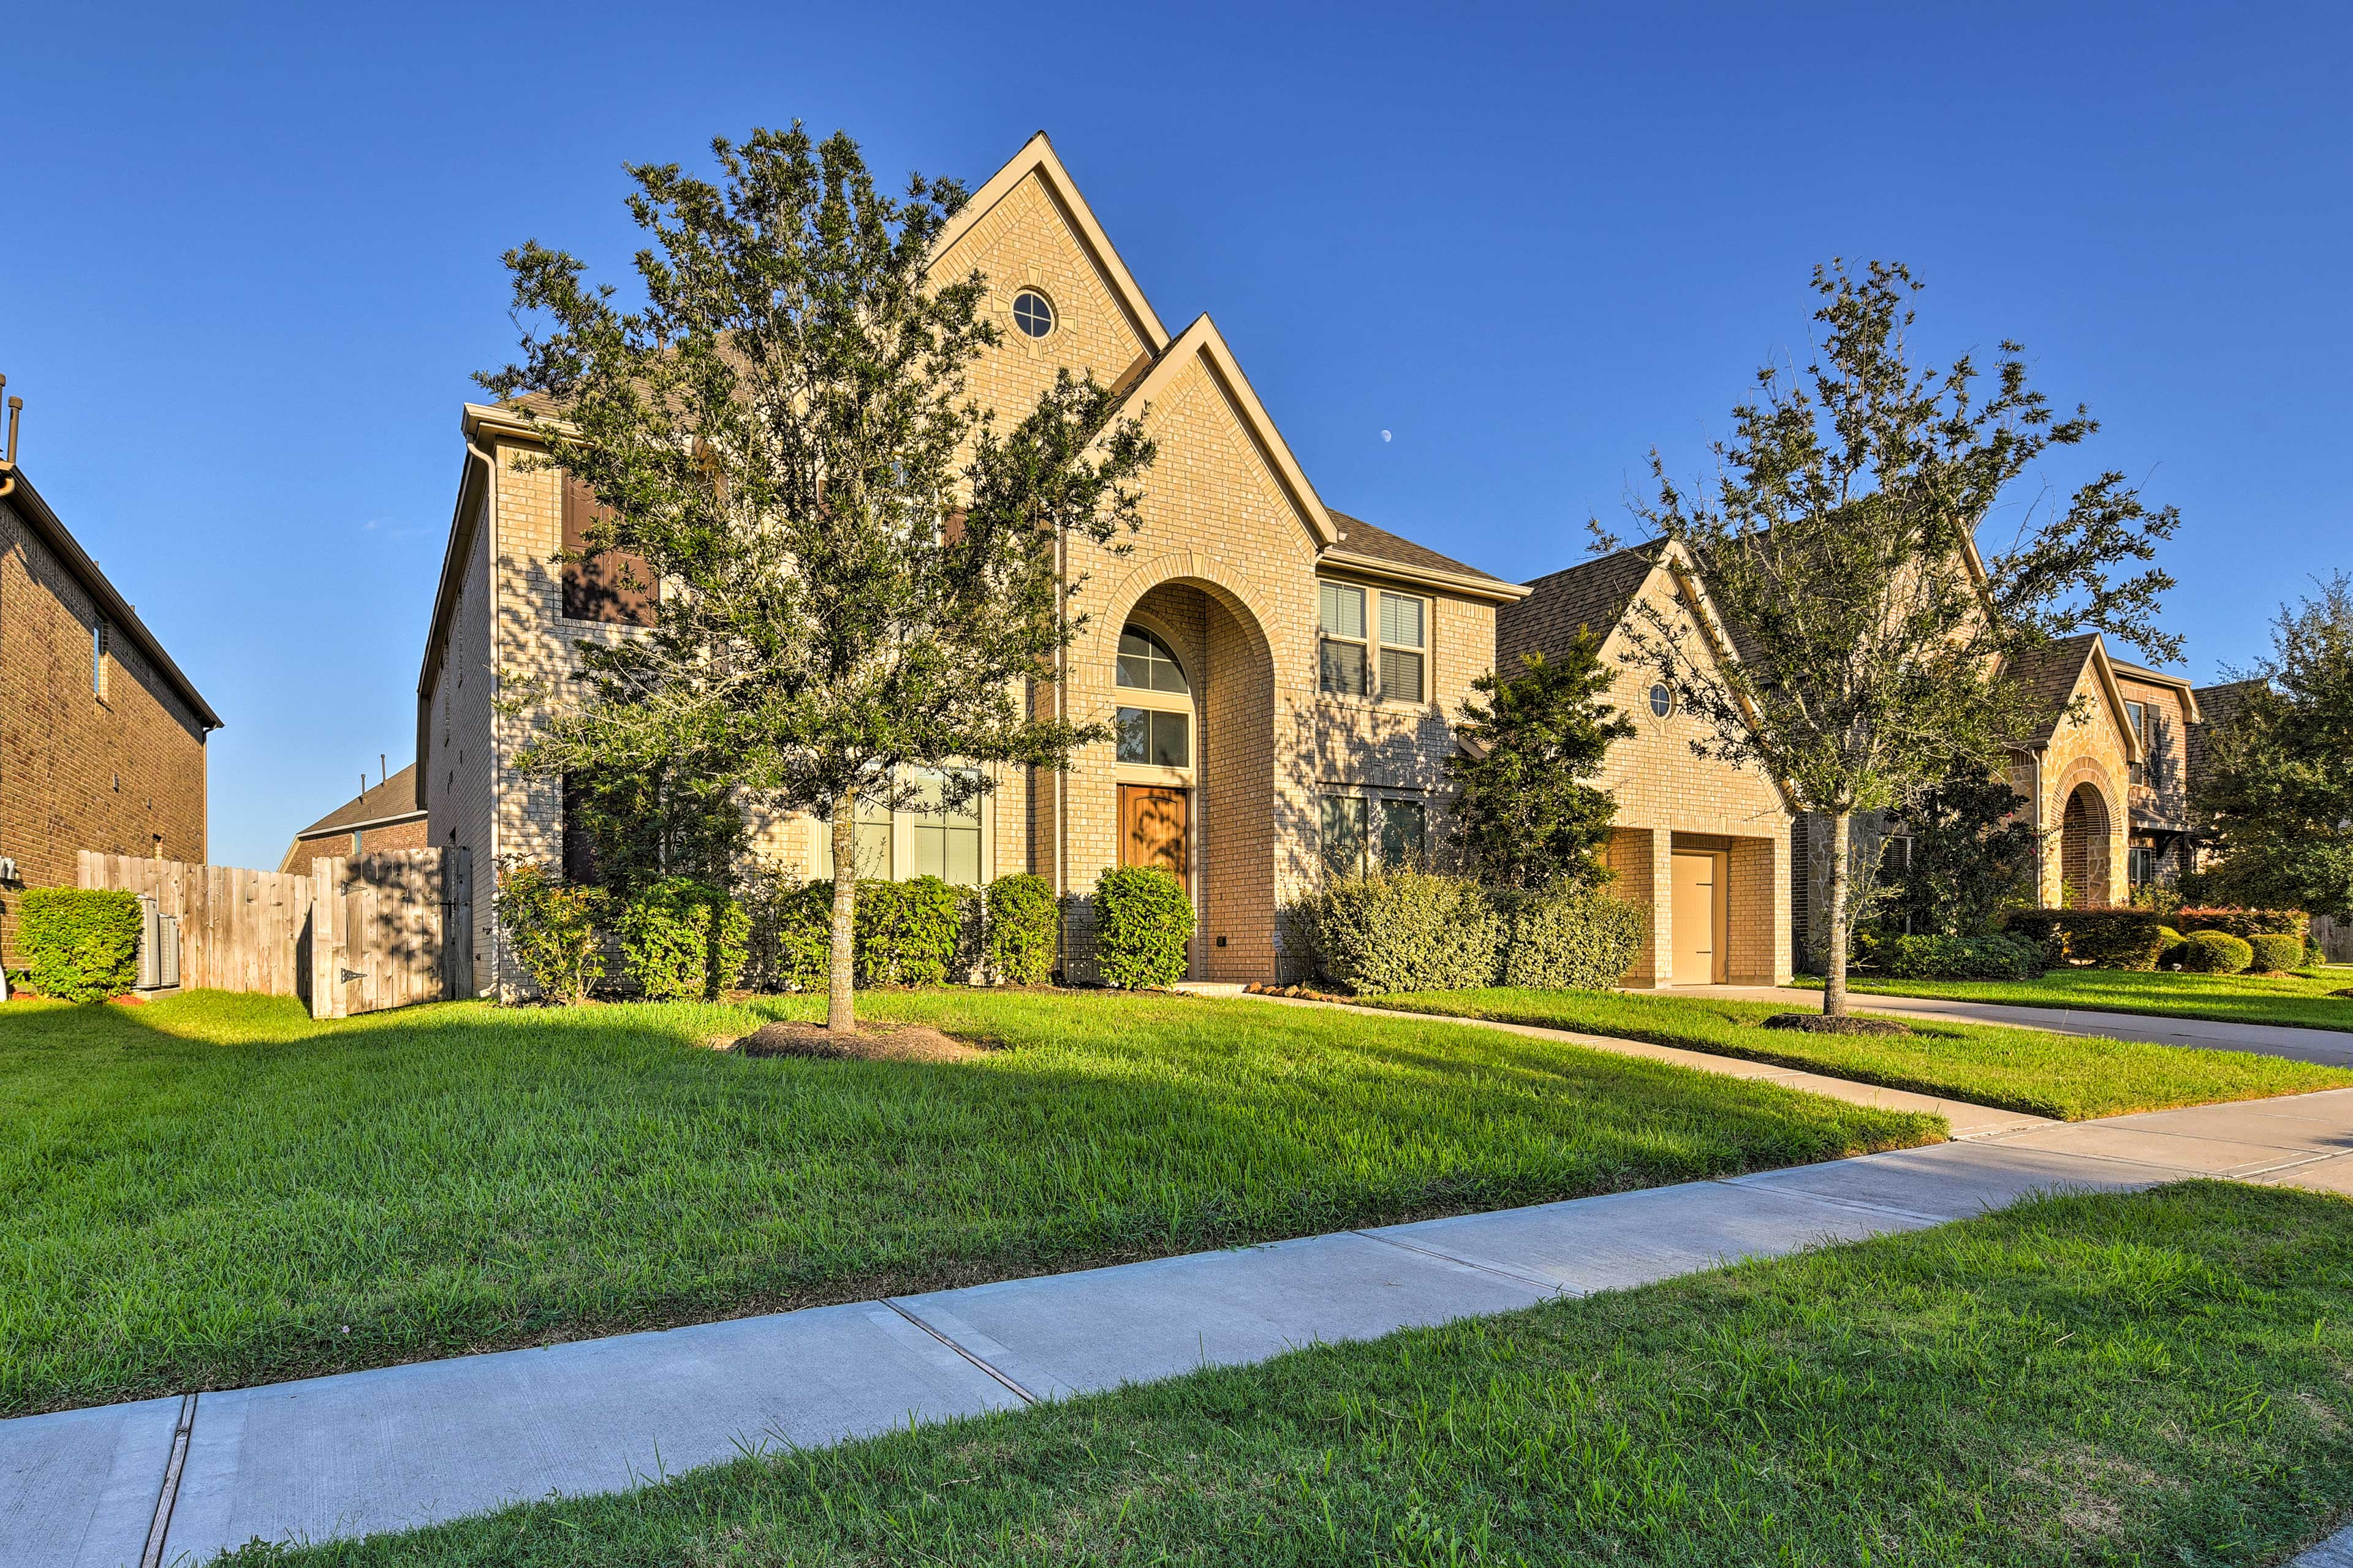 The home is within minutes of various area attractions!